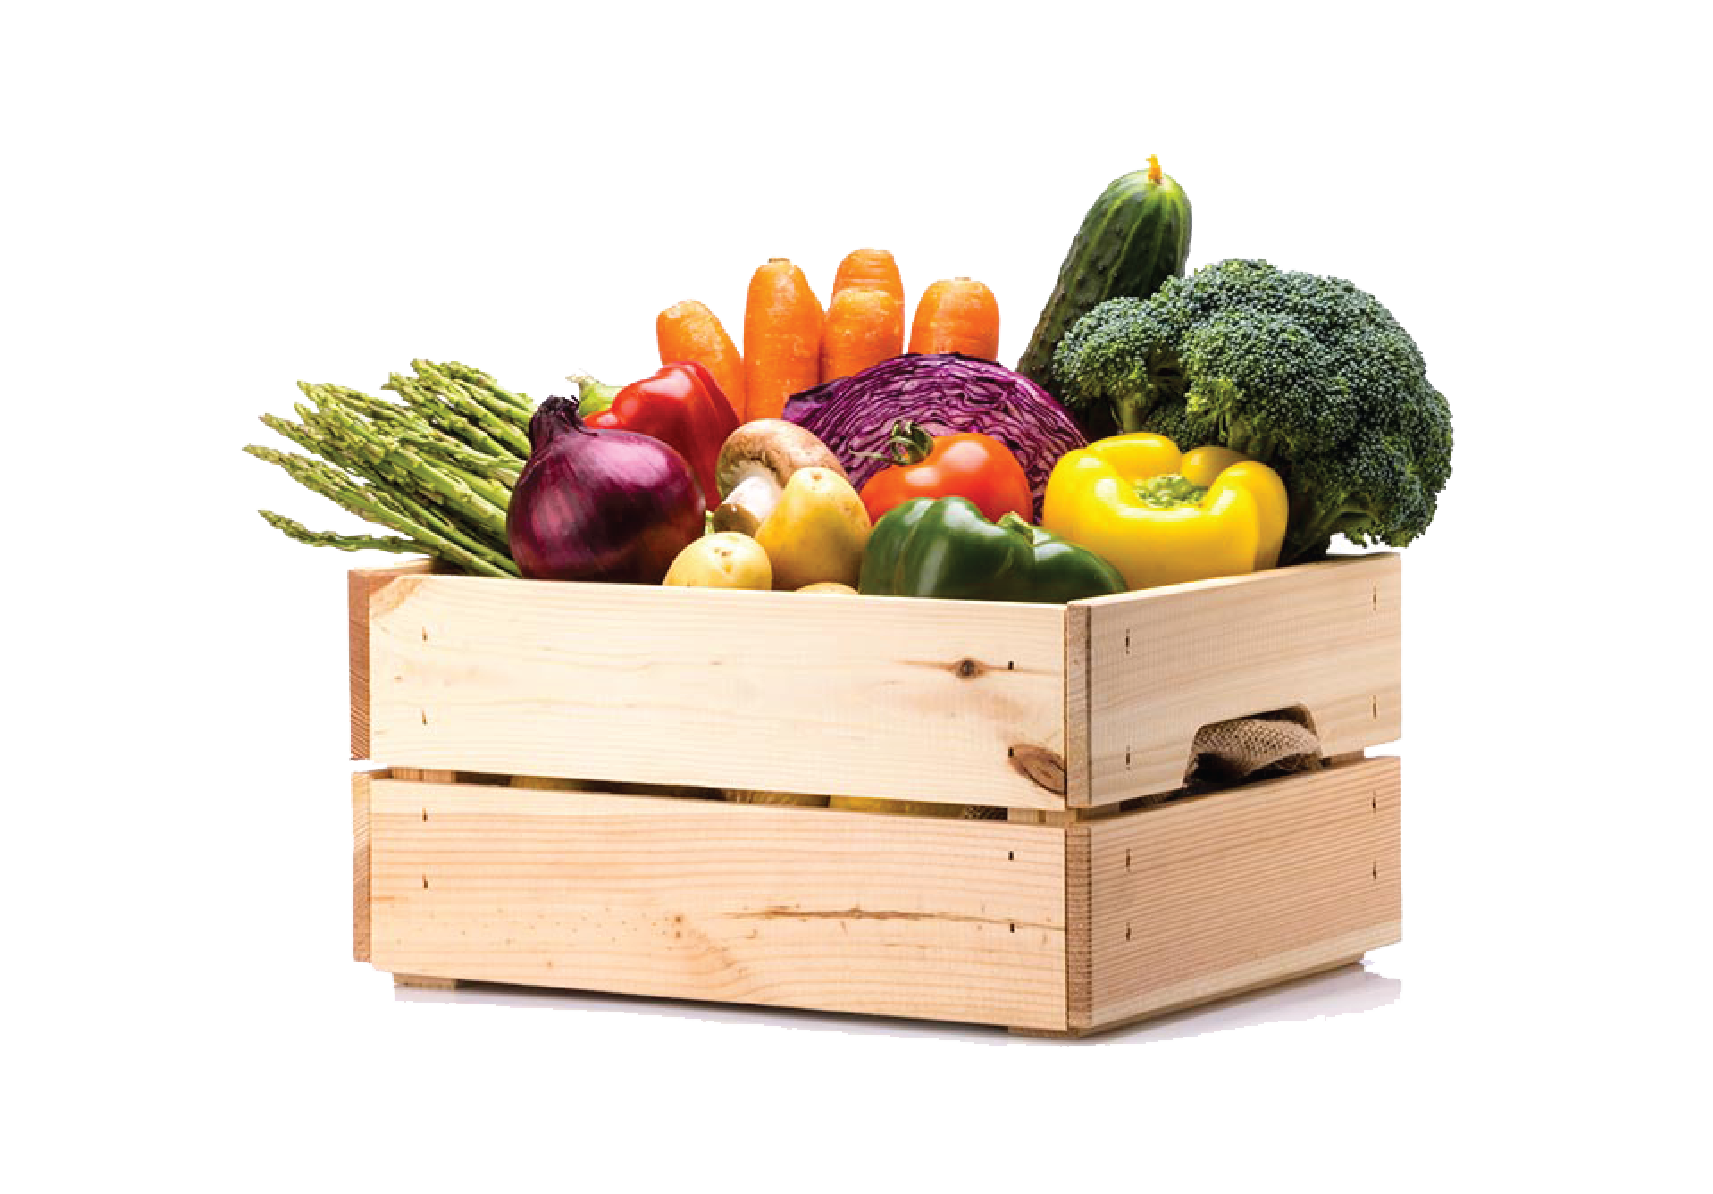 Gravit8  - Medium Produce Box